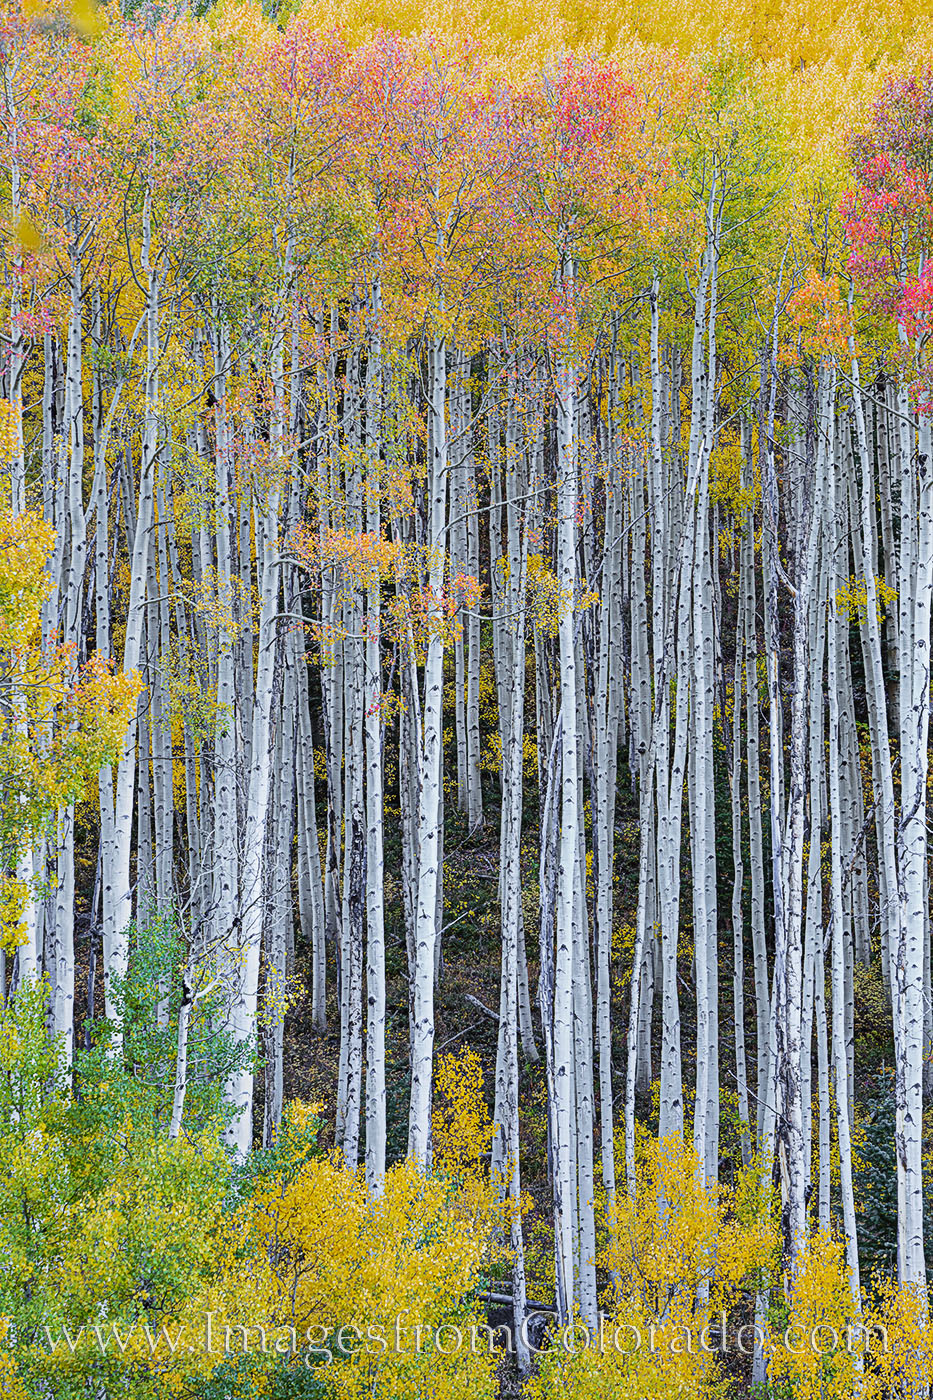 aspen, tree trunks, yellow, gold, orange, maroon bells, fall, autumn, october, photo